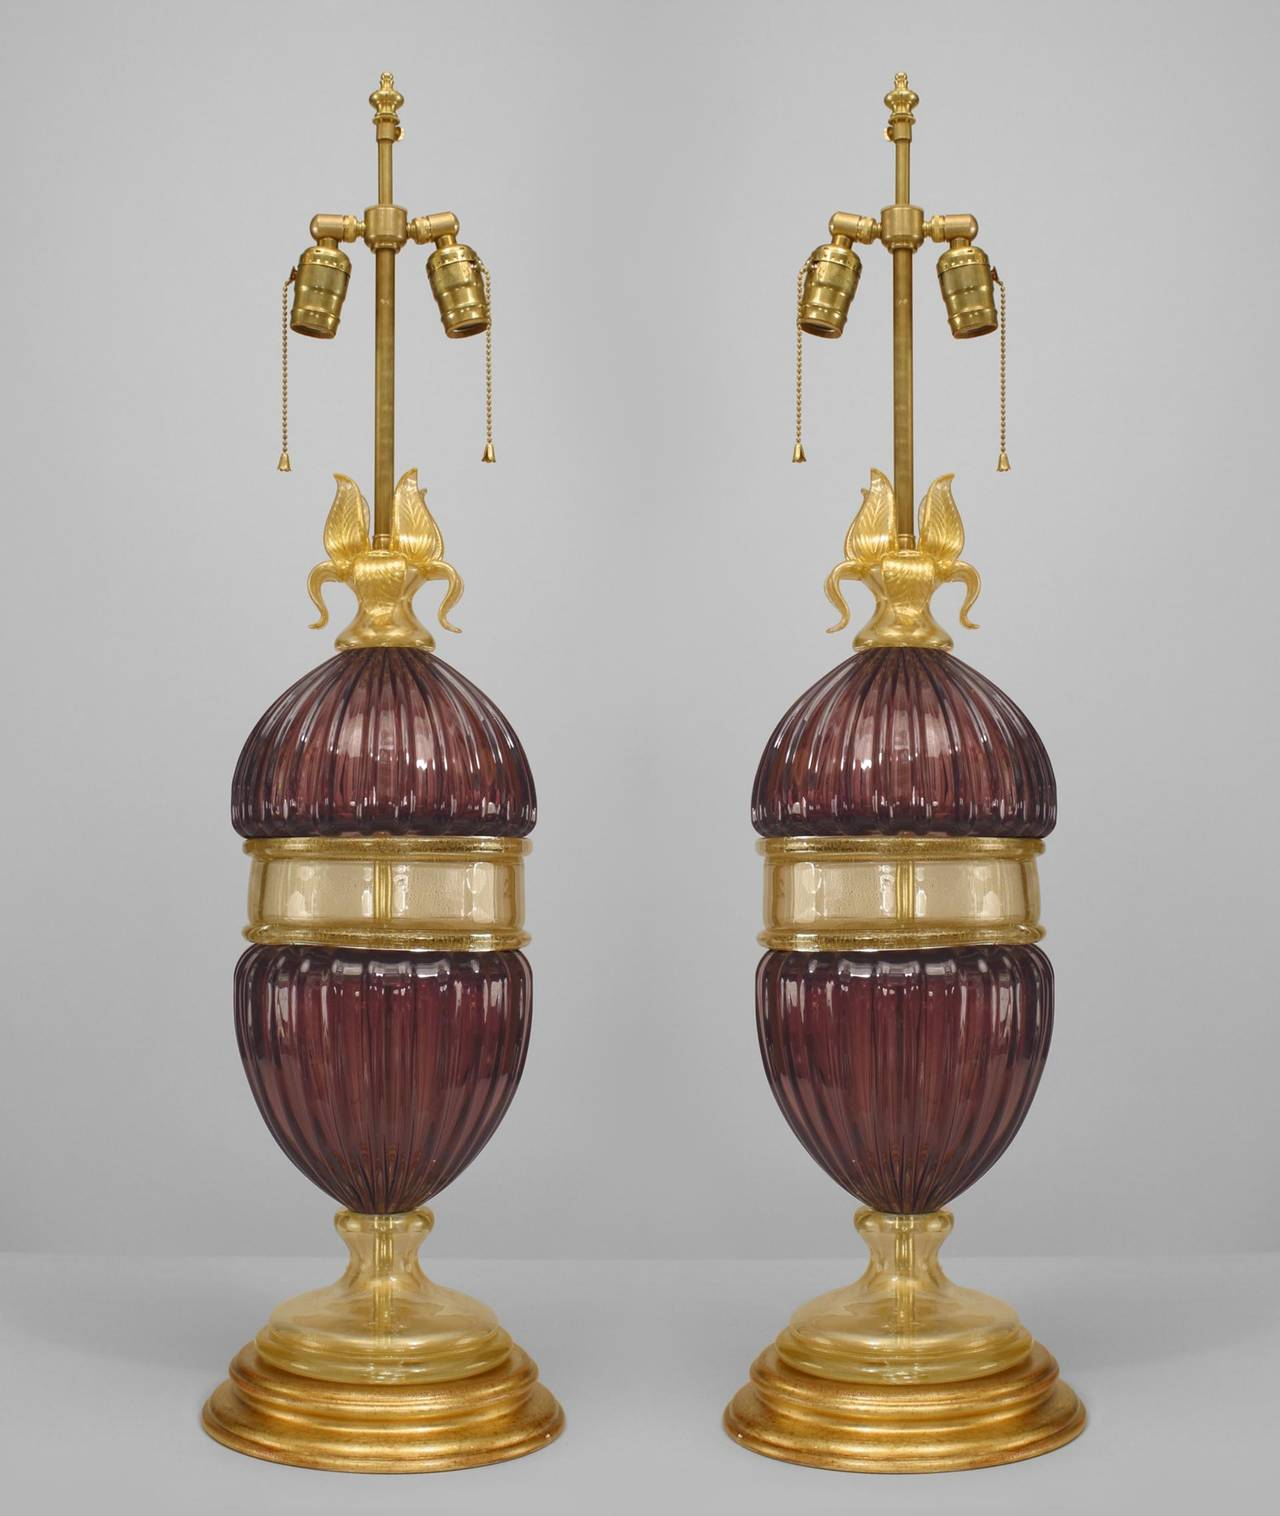 Pair of Italian Murano fluted amethyst glass table lamps, each with a gold-dusted glass center section, base and flower top (modern).